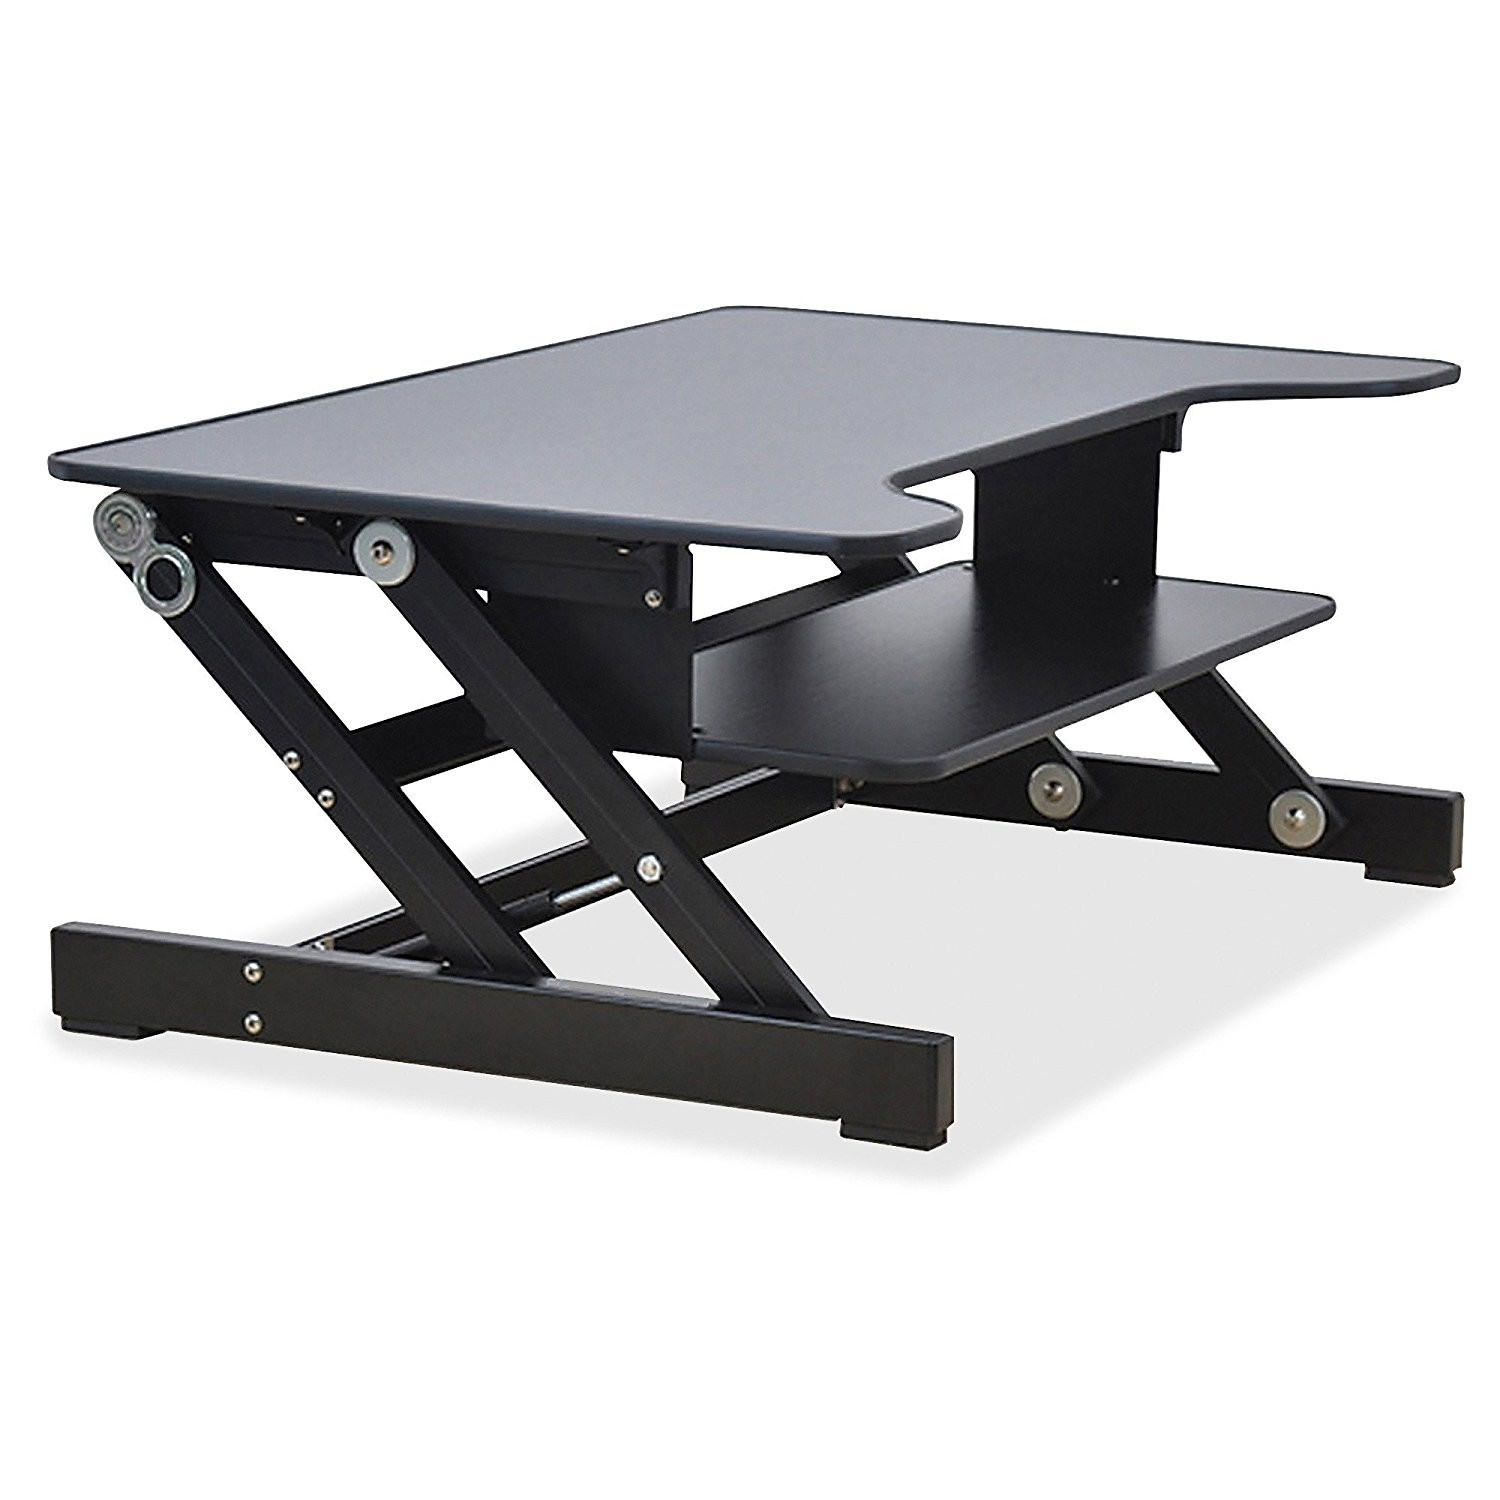 Height Adjustable Standing Desk Sit to Stand Gas Spring Riser Converter